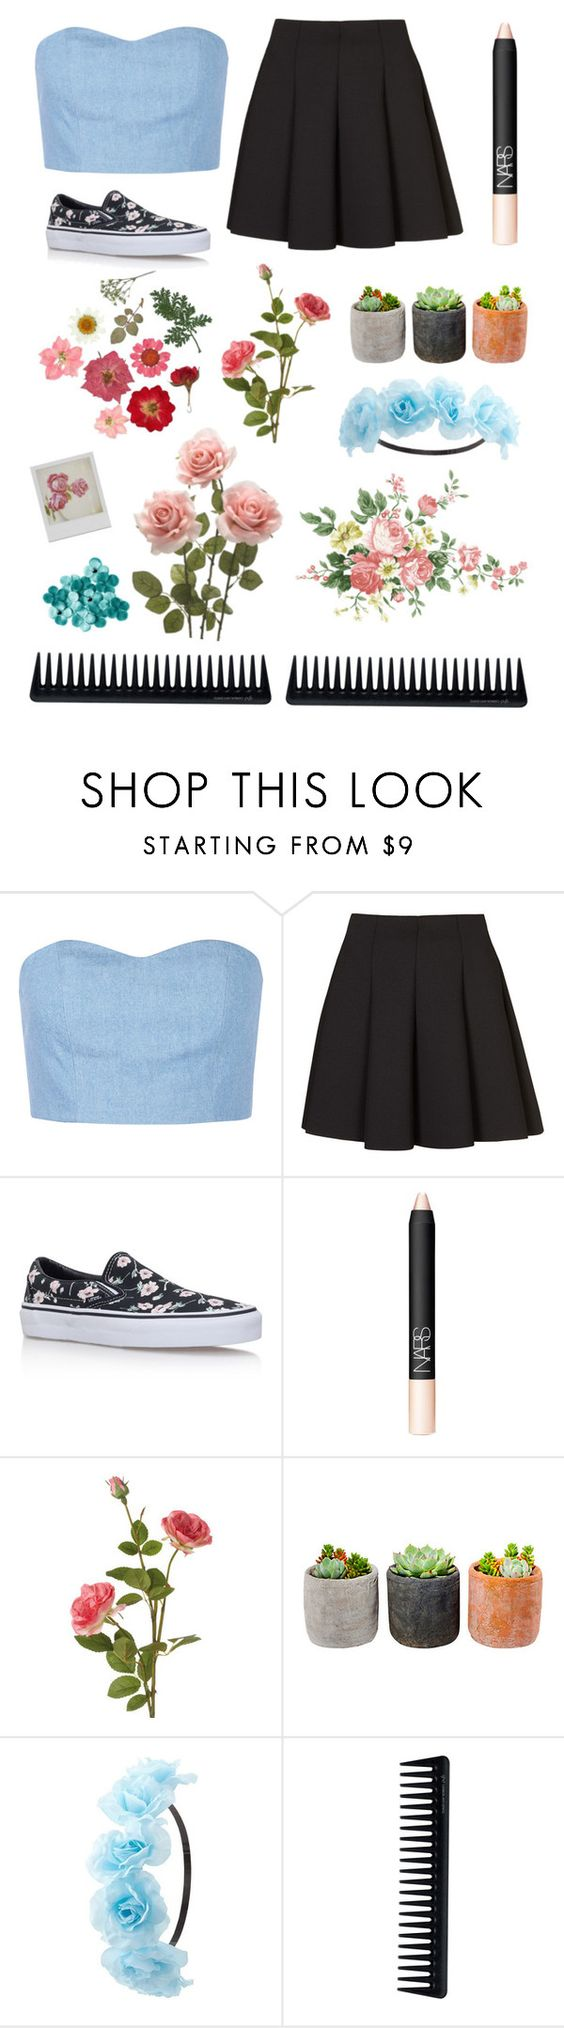 """fleurs"" by to-wear-a-mockingbird ❤ liked on Polyvore featuring Julien David, Topshop, Vans, NARS Cosmetics, OKA, Shop Succulents, Charlotte Russe, Disney and GHD"